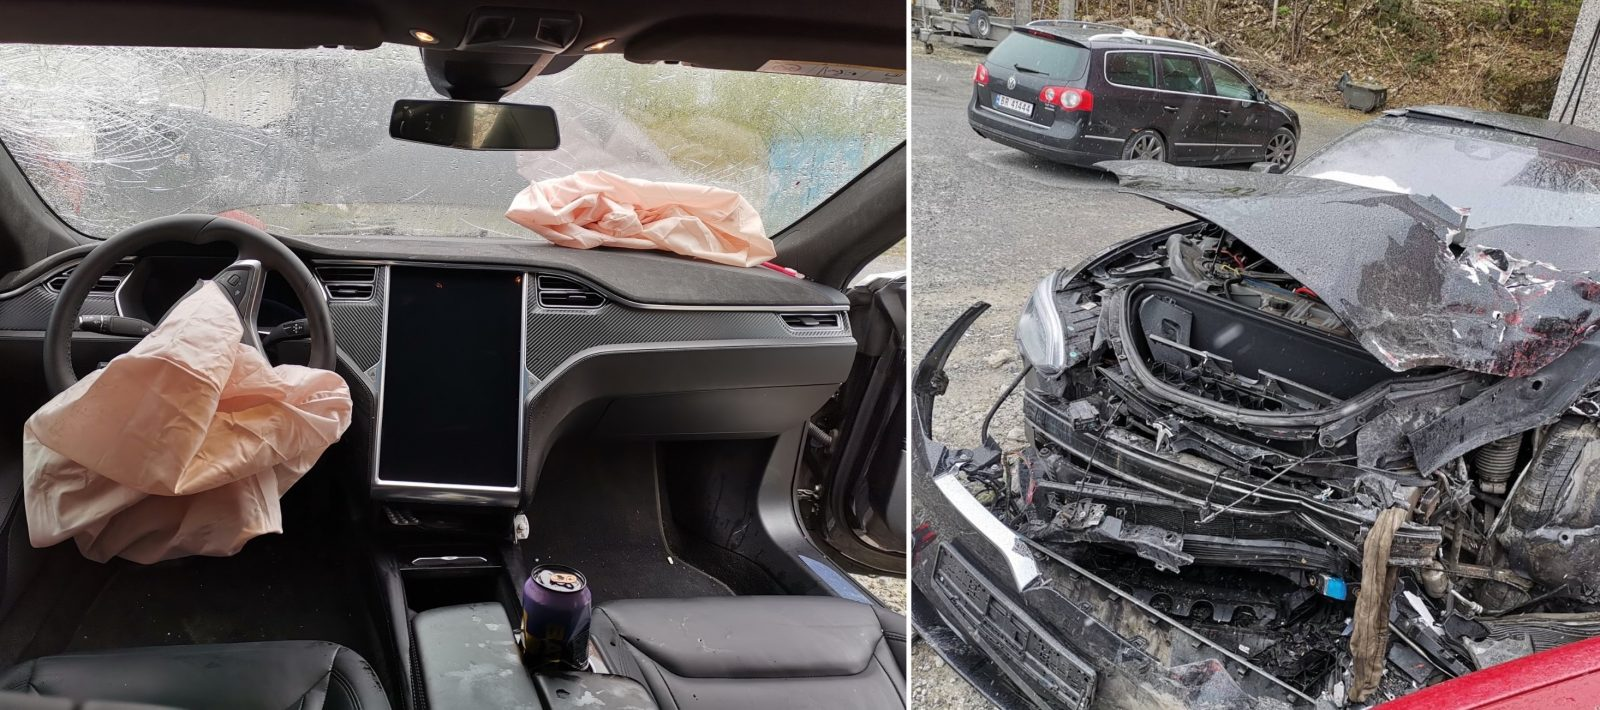 Tesla saved my life', says owner after walking away from